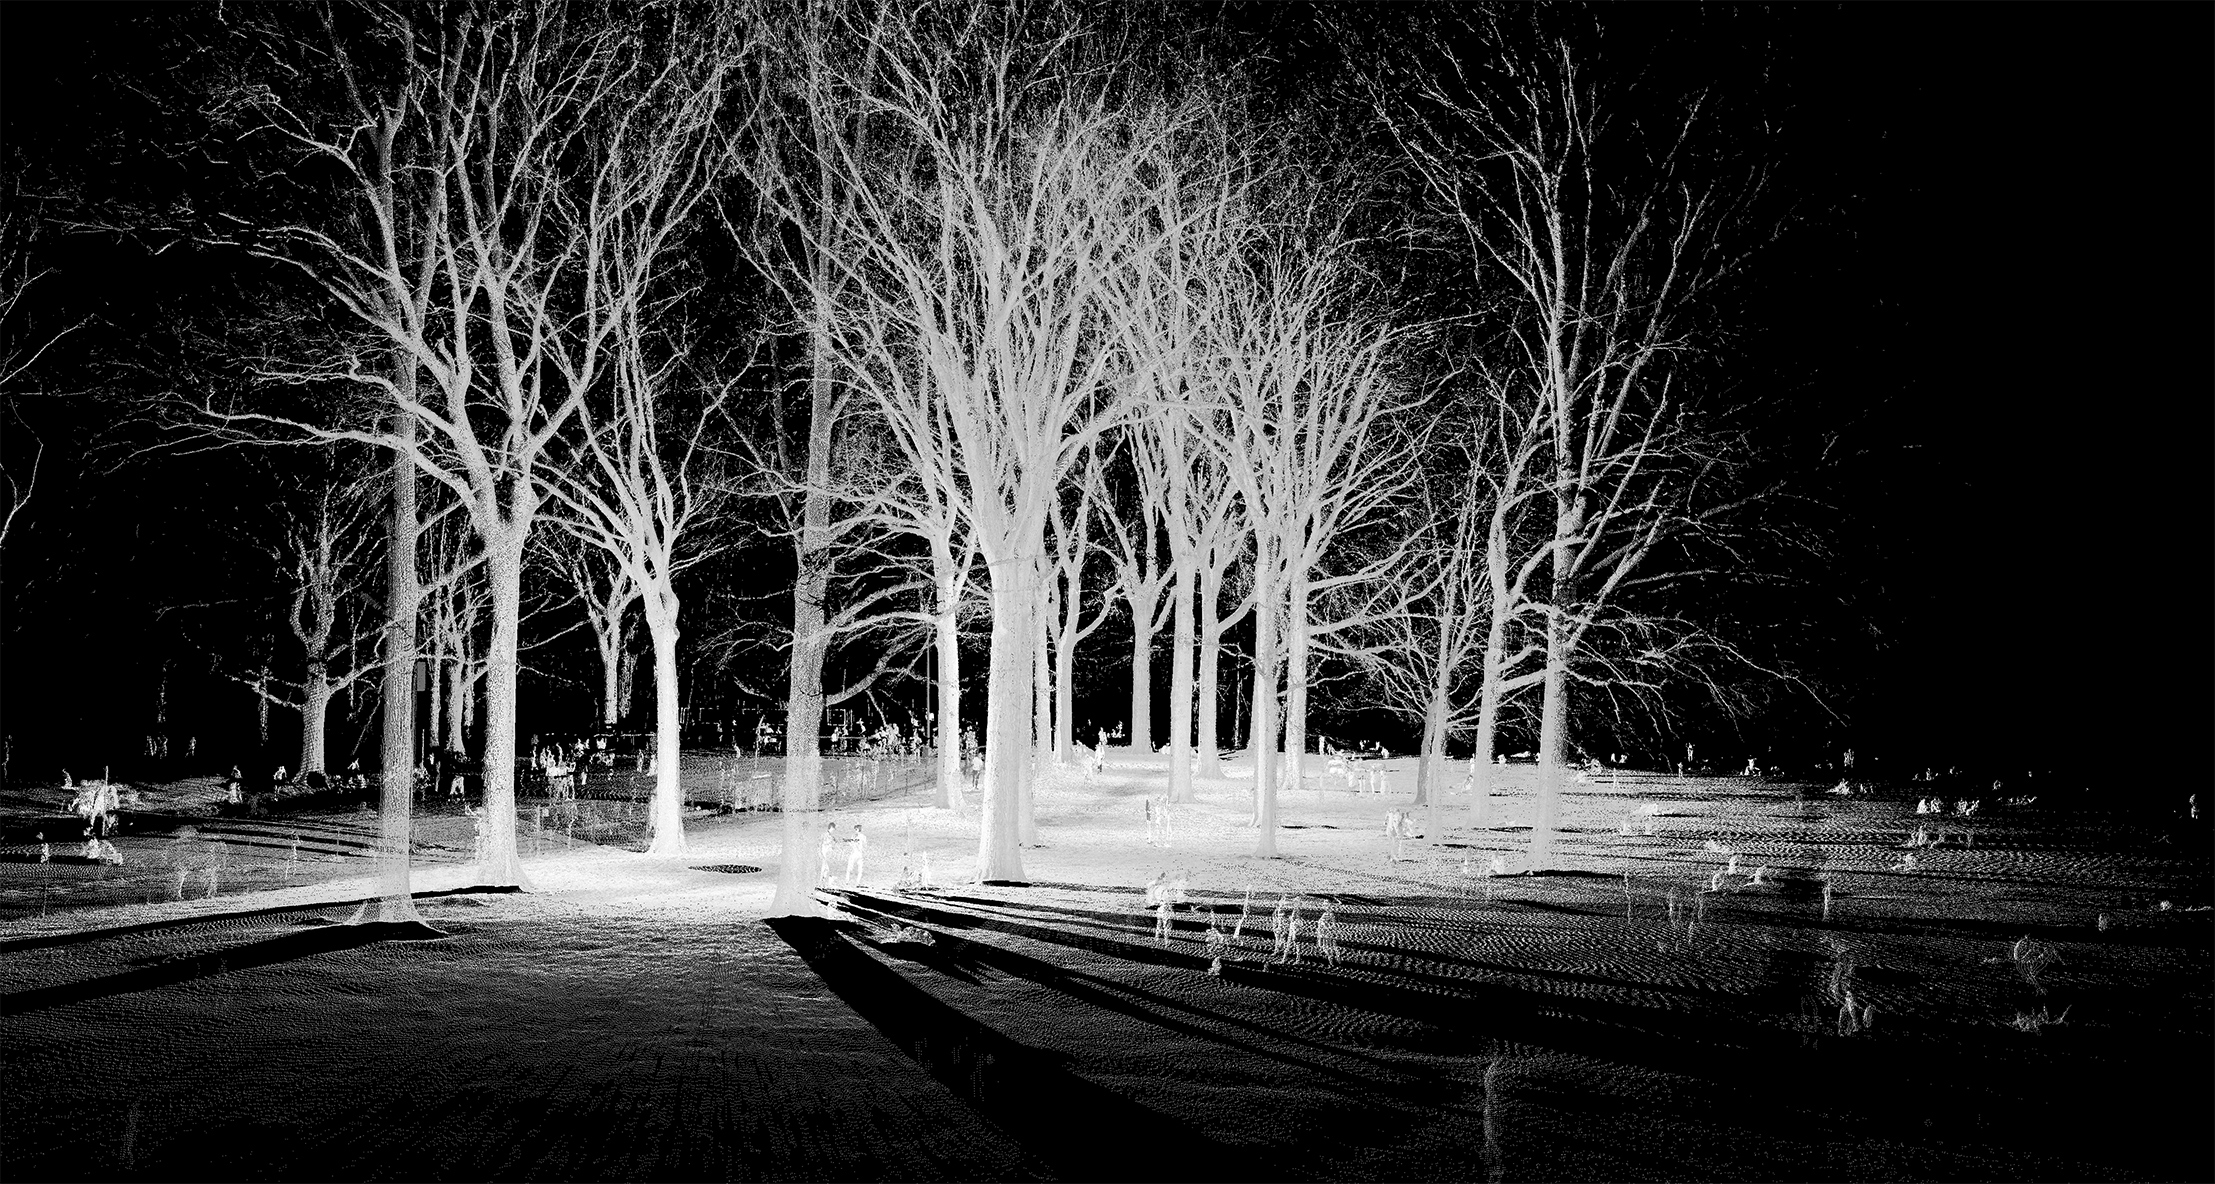 mynd-workshop-central-park-sheep-meadow-trees-3-3D-laser-scanning-point-cloud-new-york.jpg